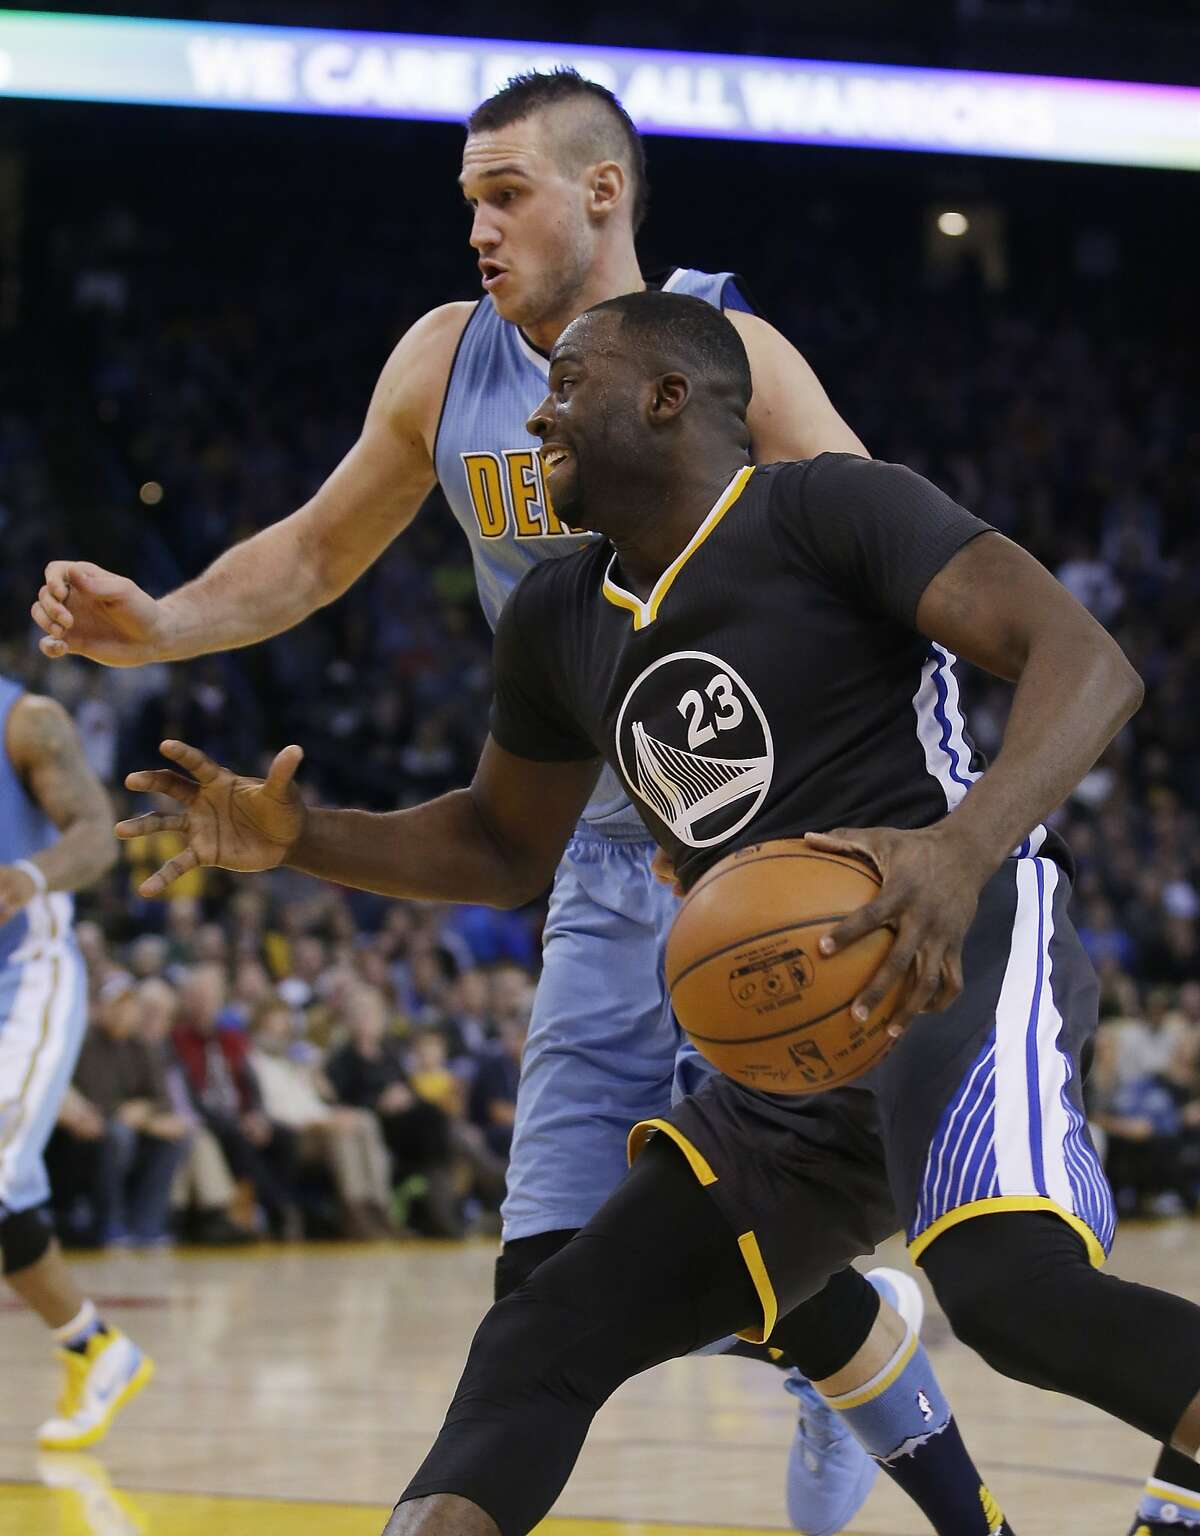 Draymond Green (23) dribbles next to Denver Nuggets' Danilo Gallinari during the second half of an NBA basketball game Saturday, Jan. 2, 2016, in Oakland, Calif. Golden State won 111-108 in overtime. (AP Photo/Marcio Jose Sanchez)